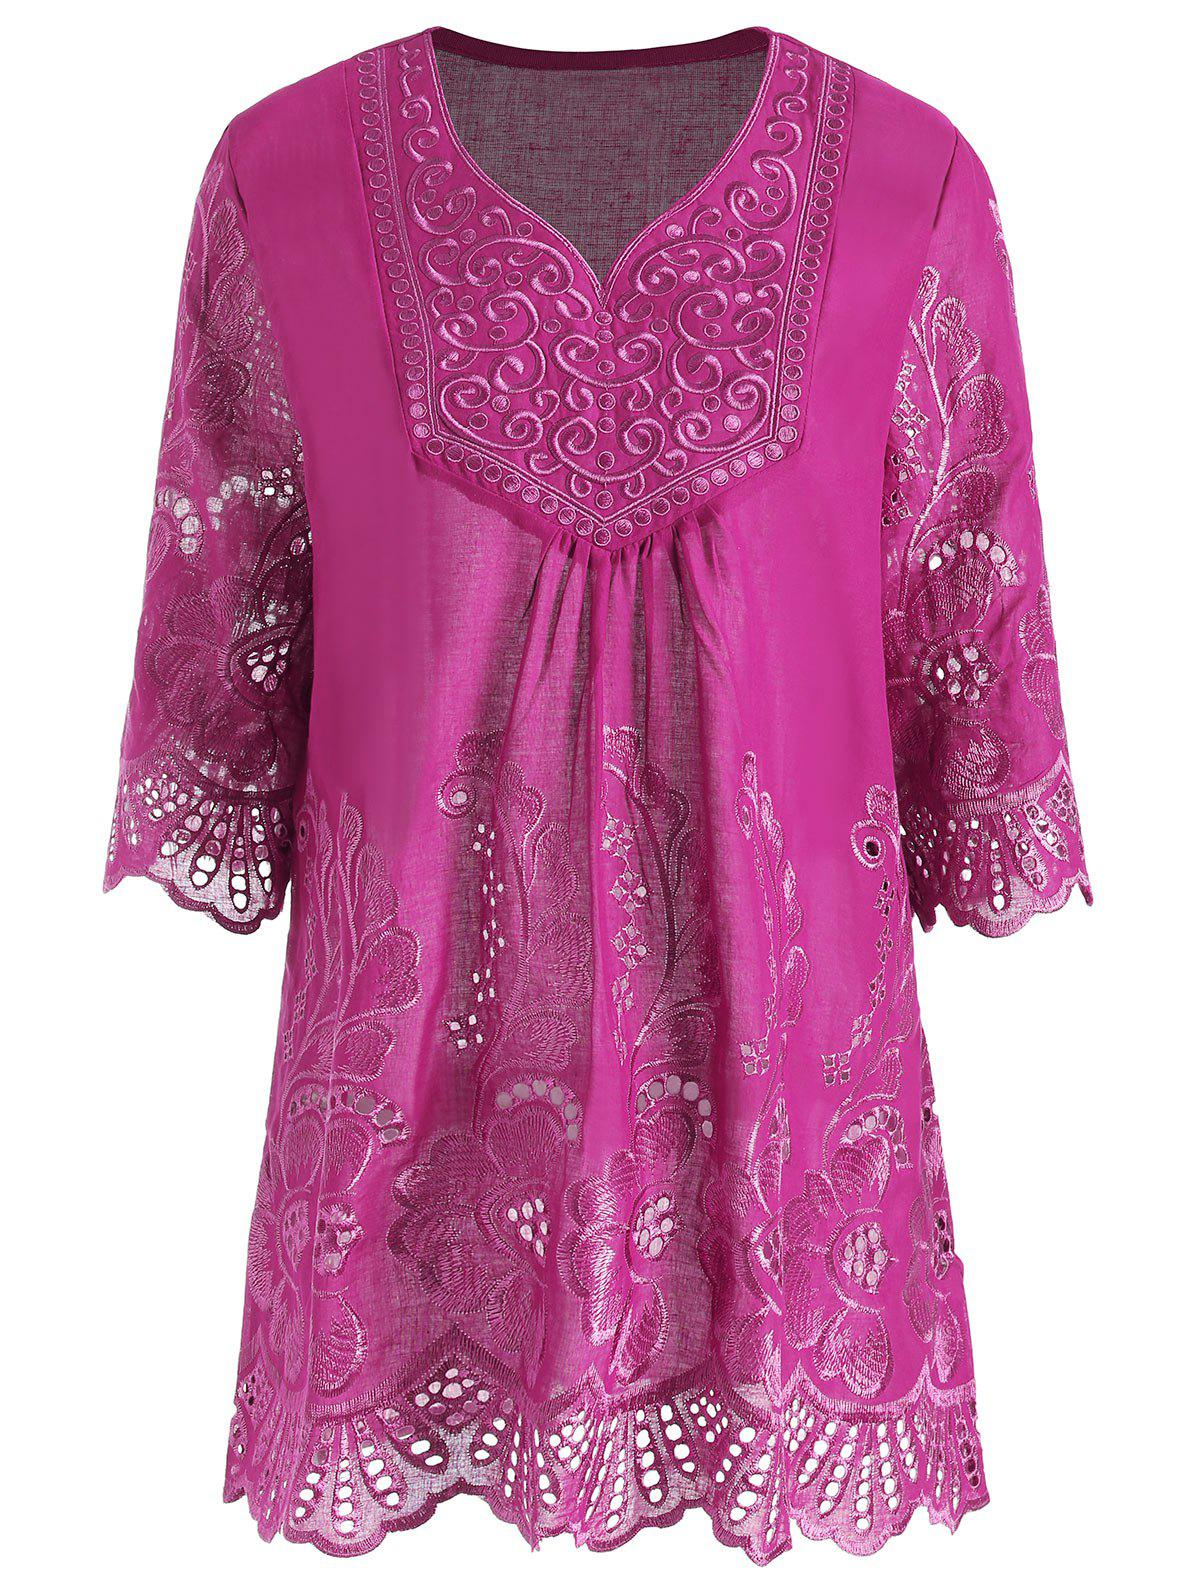 2018 Plus Size V Neck Embroidered Tunic Top In Rose Madder 3xl Torch Tunik Women Blue Black Navy L Chic